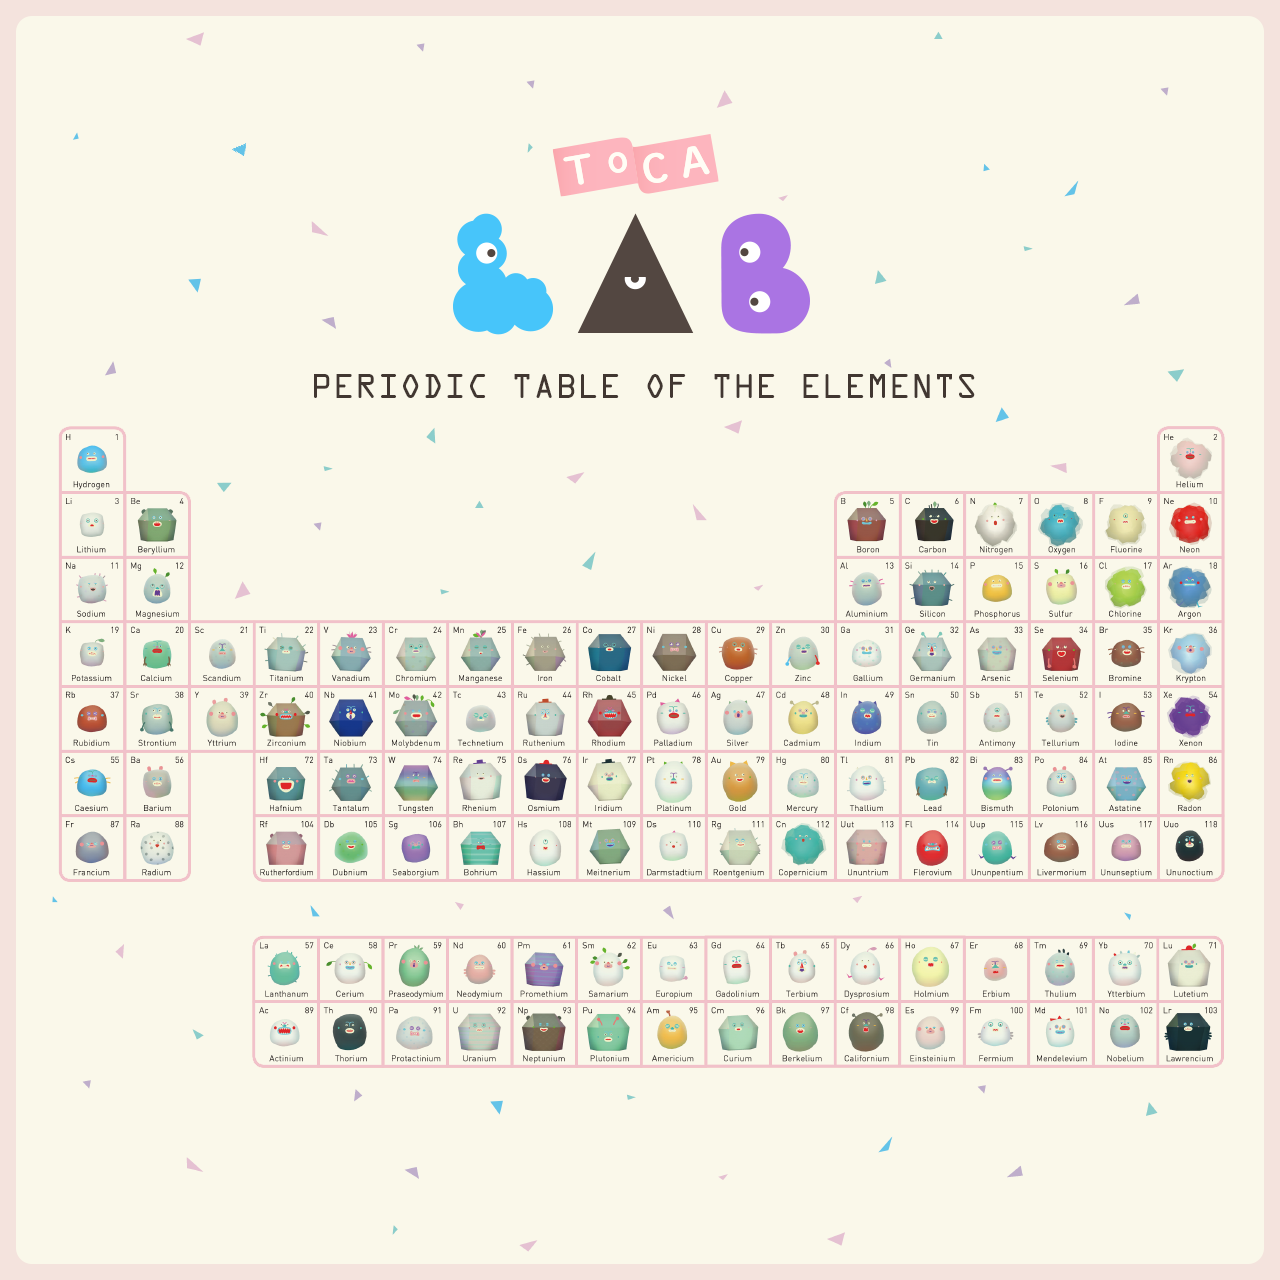 Toca lab periodic table of elements frank is obsessed with this periodic table gamestrikefo Gallery